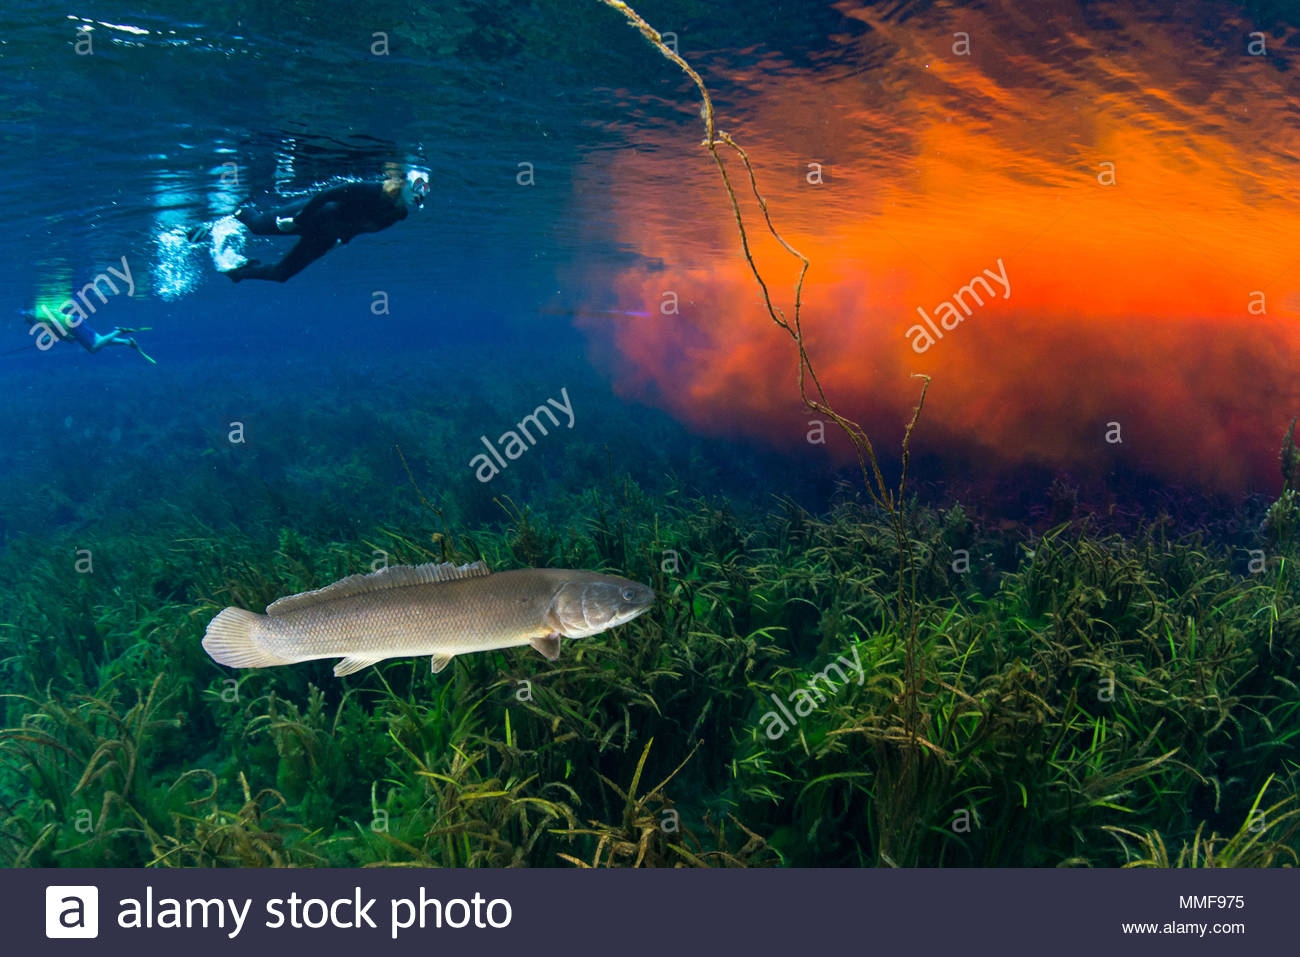 A bowfin, Amia calva, and a snorkeler swim near Rhodamine WT dye as it moves down the Silver River during a scientific study. - Stock Image